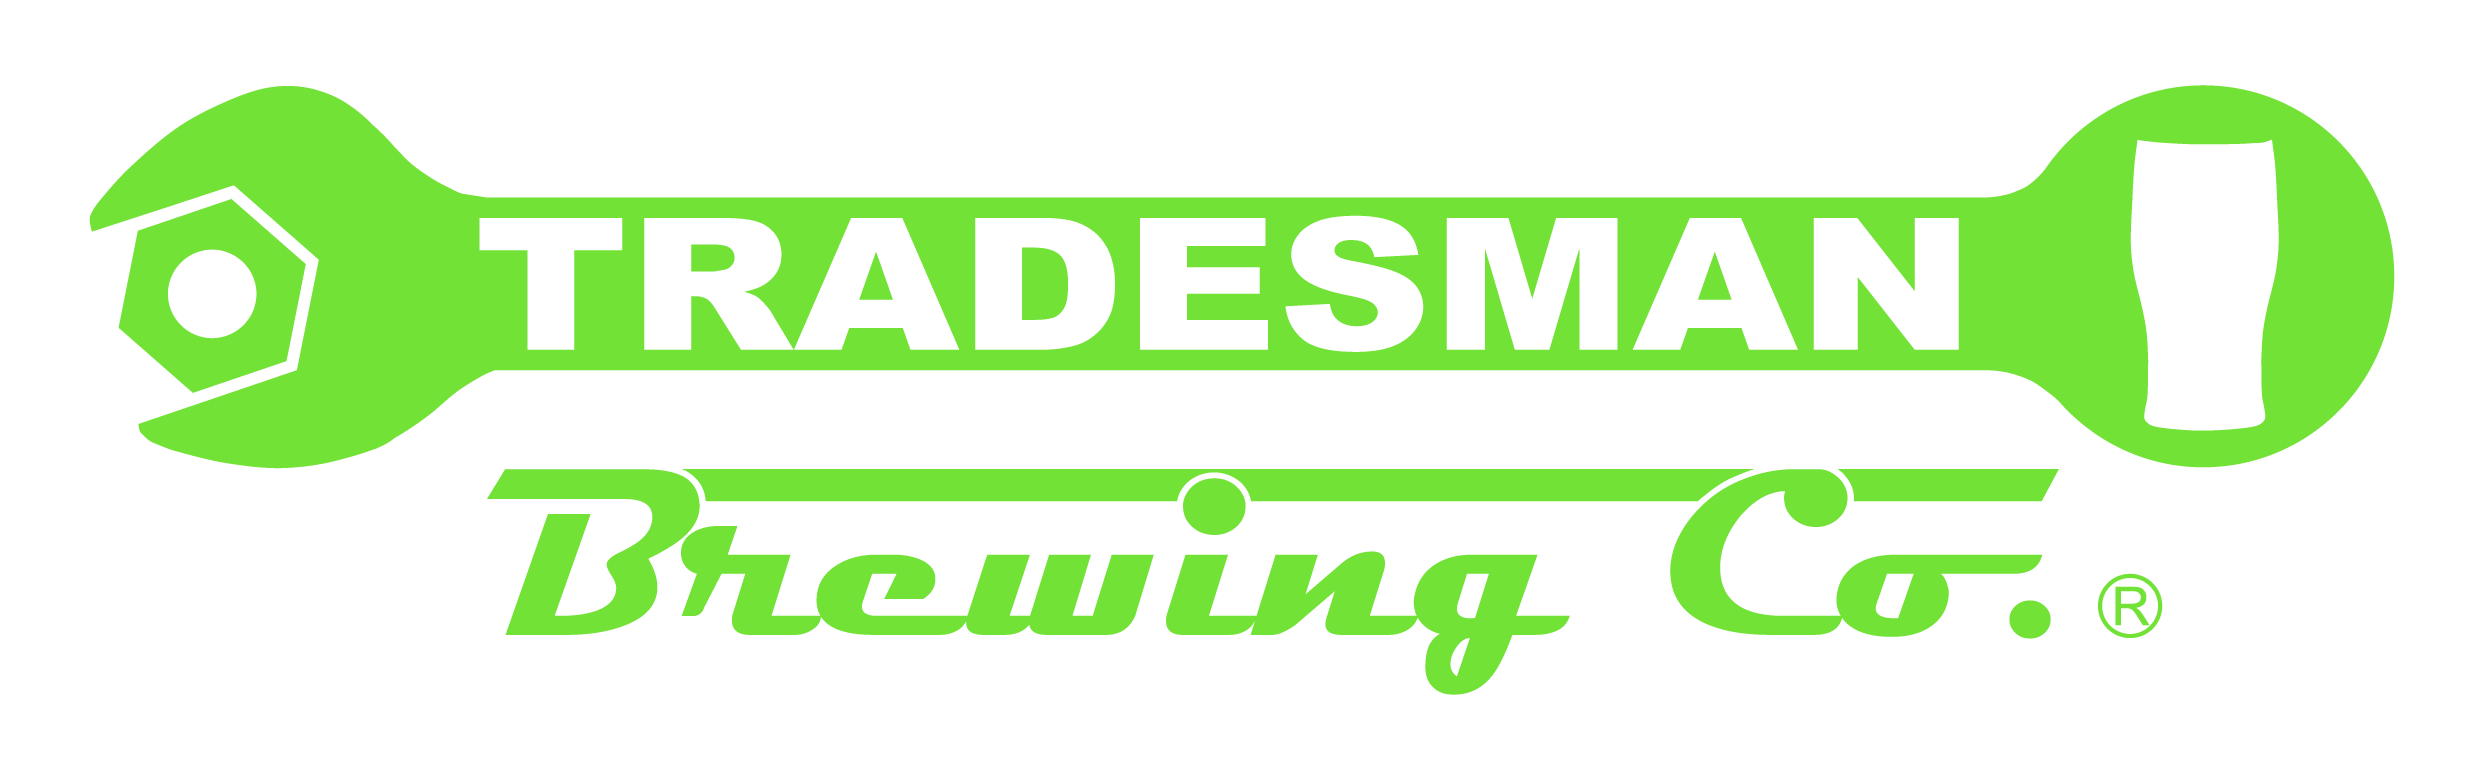 Tradesman-Brewing-Co-Logo-01.png